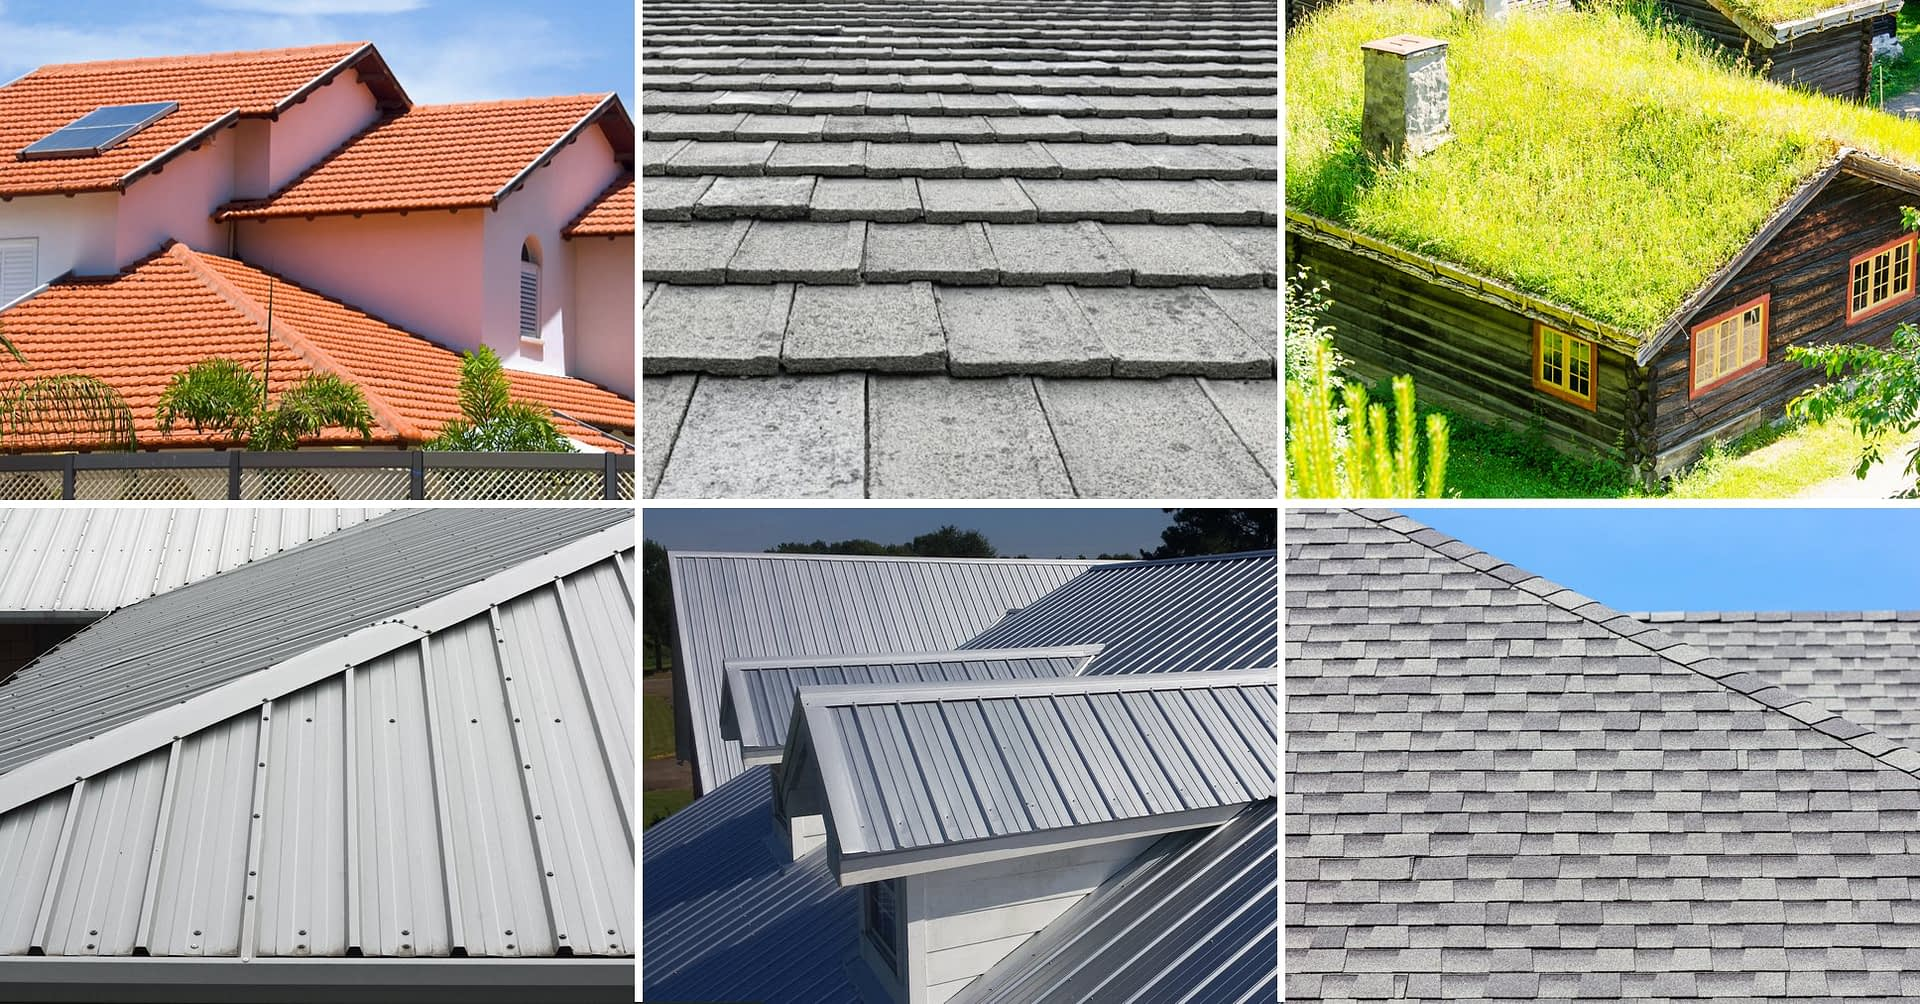 , Looking at Roofing Material – Are Any Really Sustainable?, The Circular Economy